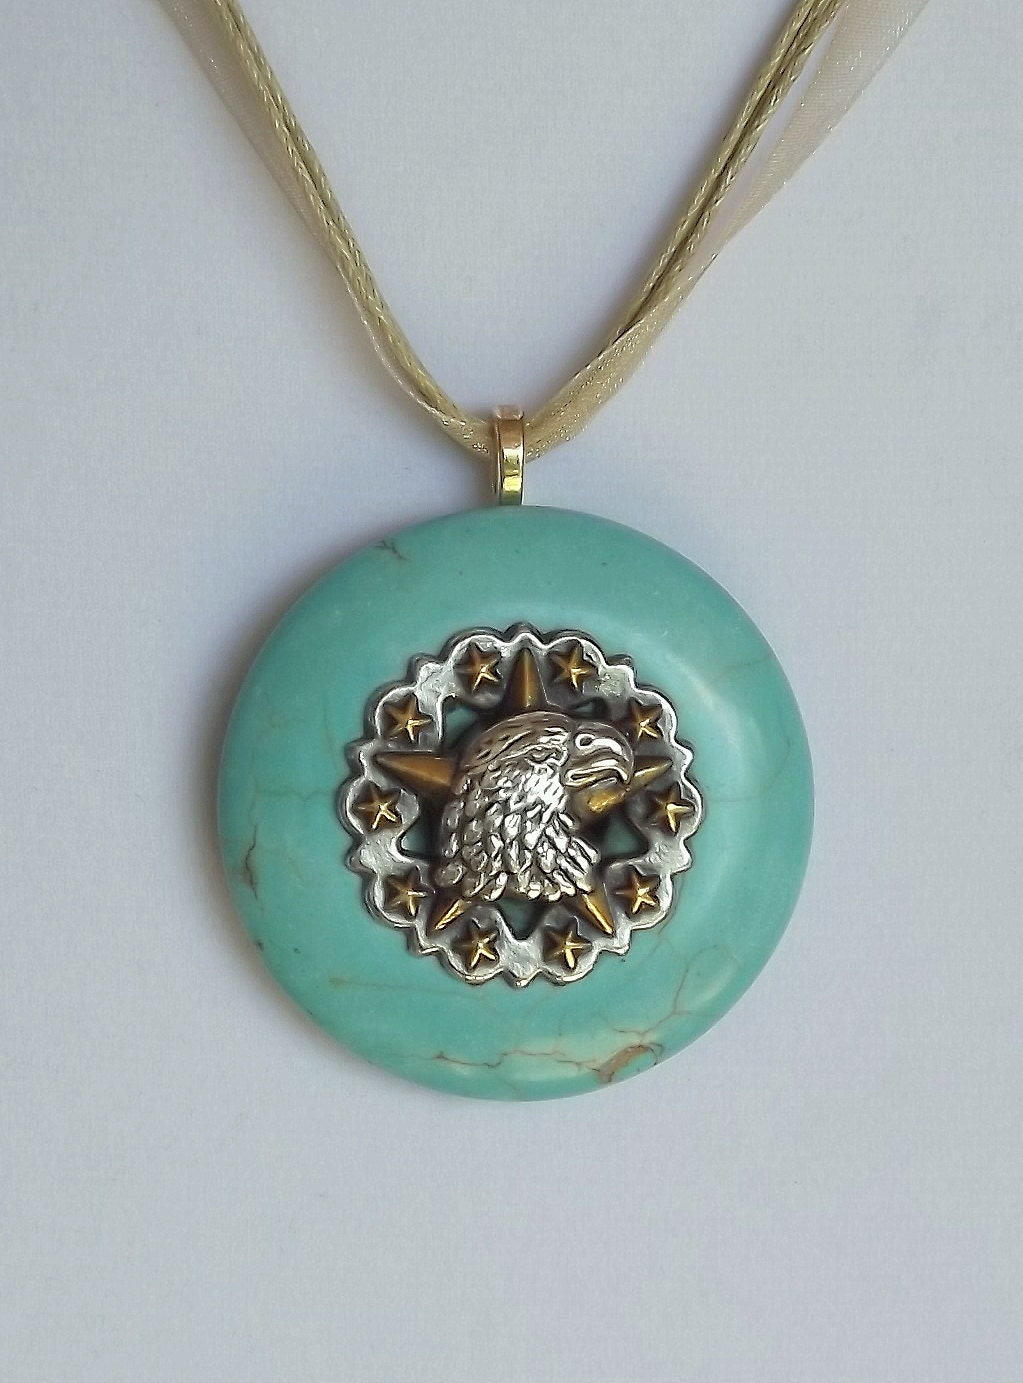 american eagle necklace eagle pendant turquoise